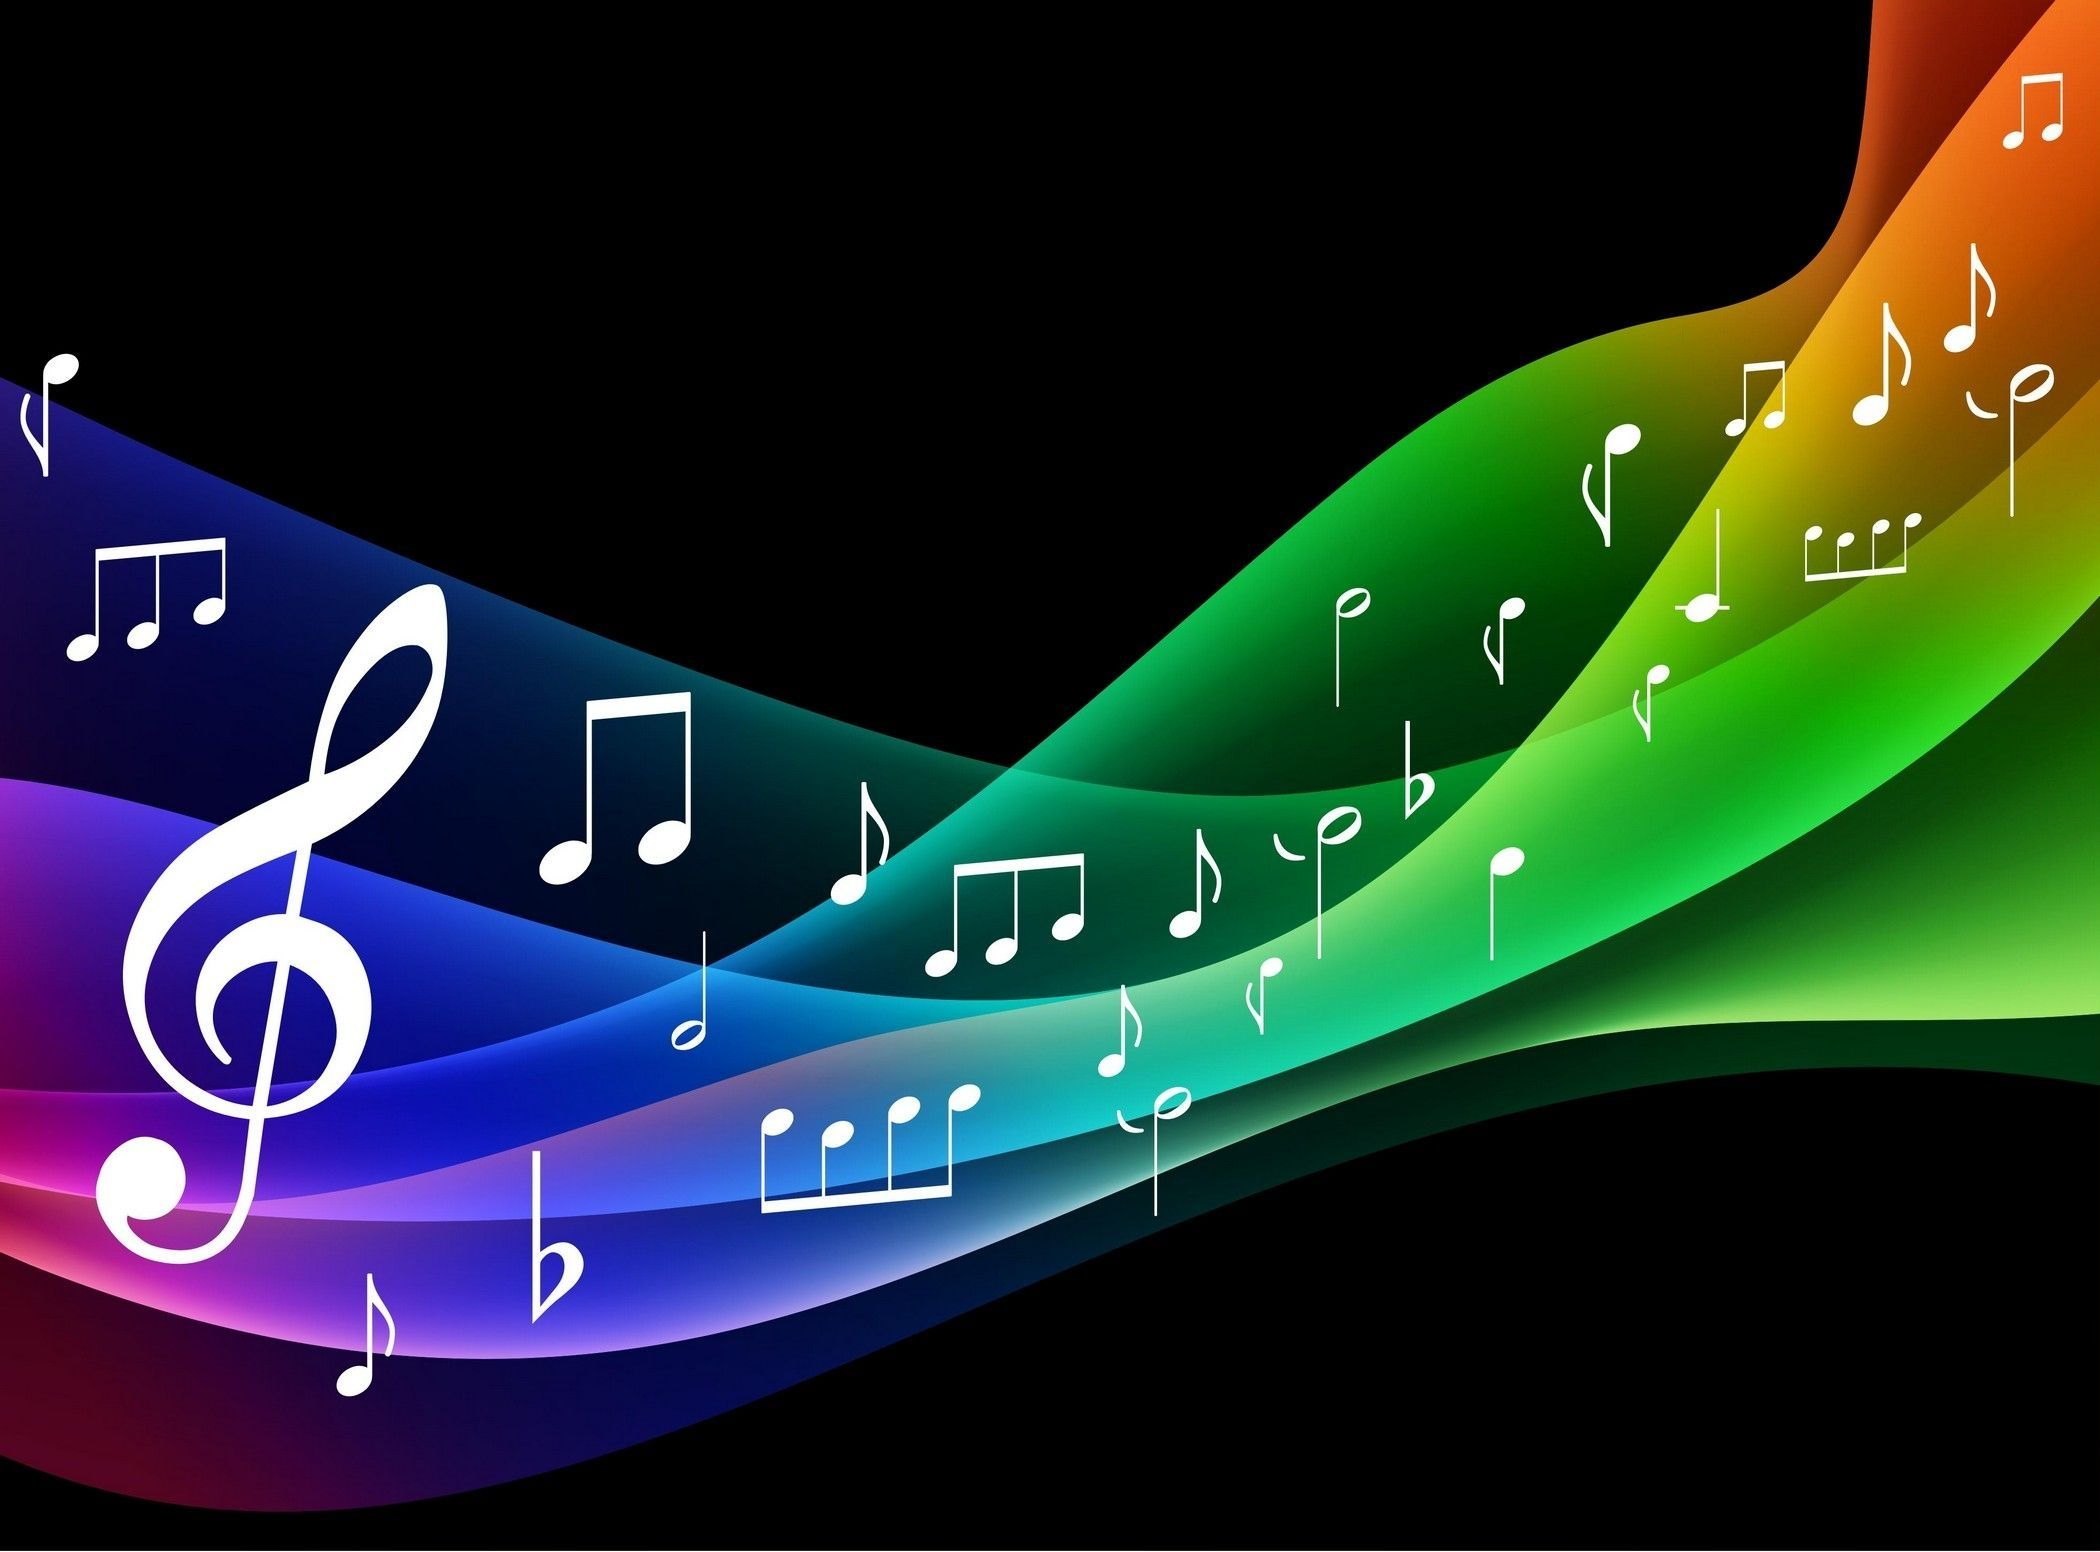 Music Background Images: Background Images About Music HD